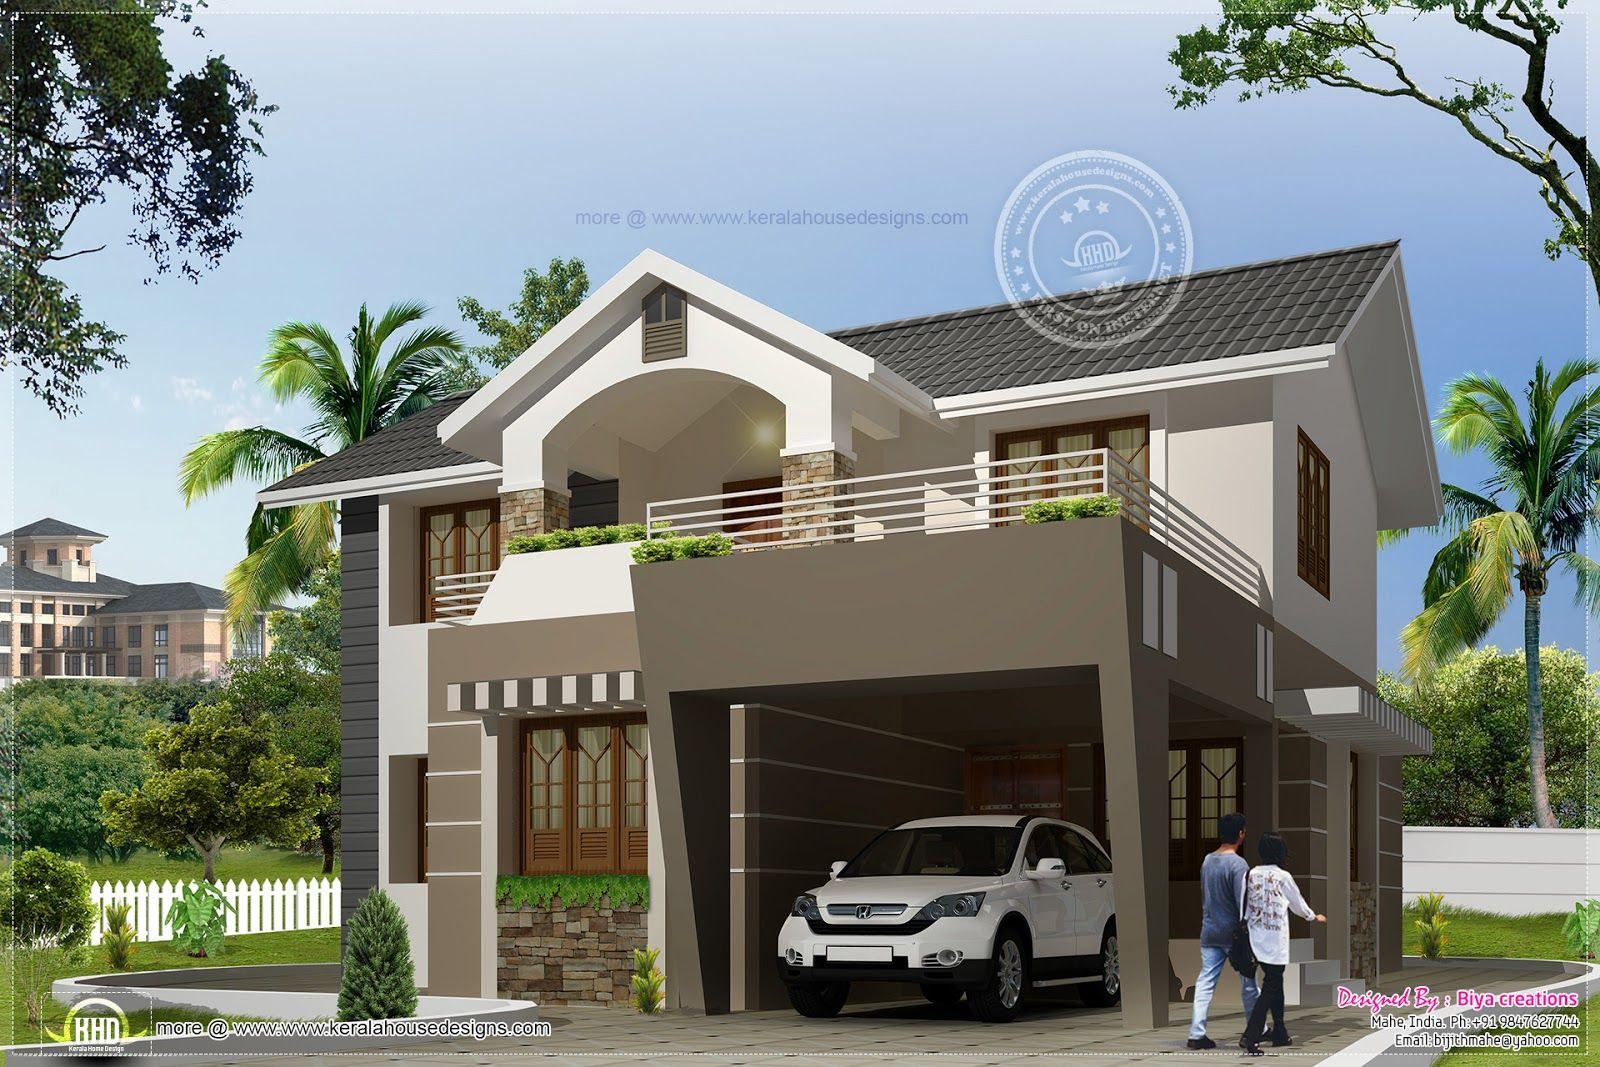 Exterior House Design Ideas home exterior design ideas android apps on google play awesome exterior house designinspirational home interior design Exterior House Design Ideas Exterior House Plans Exterior Licious Small House Bungalow Cool Plans Ideas Best